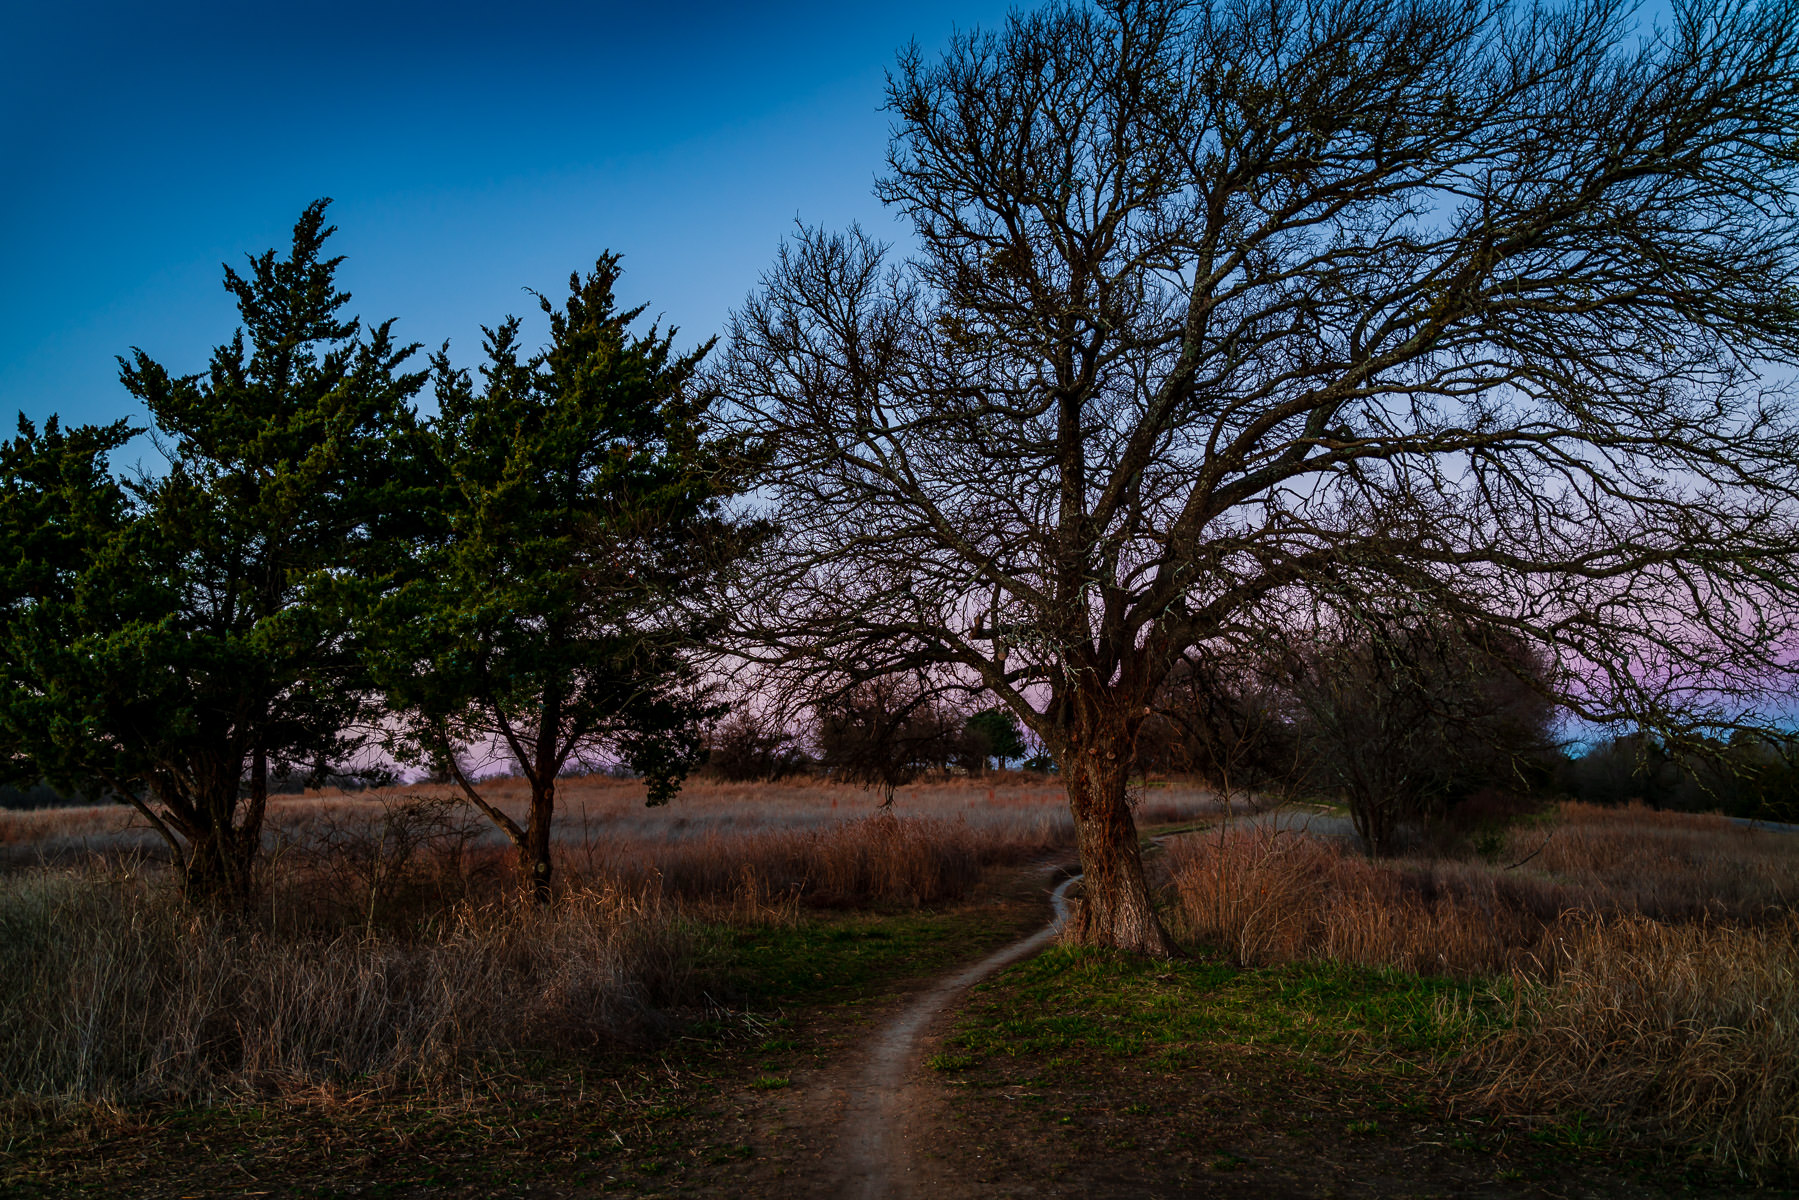 A path carves between trees at McKinney, Texas' Erwin Park.